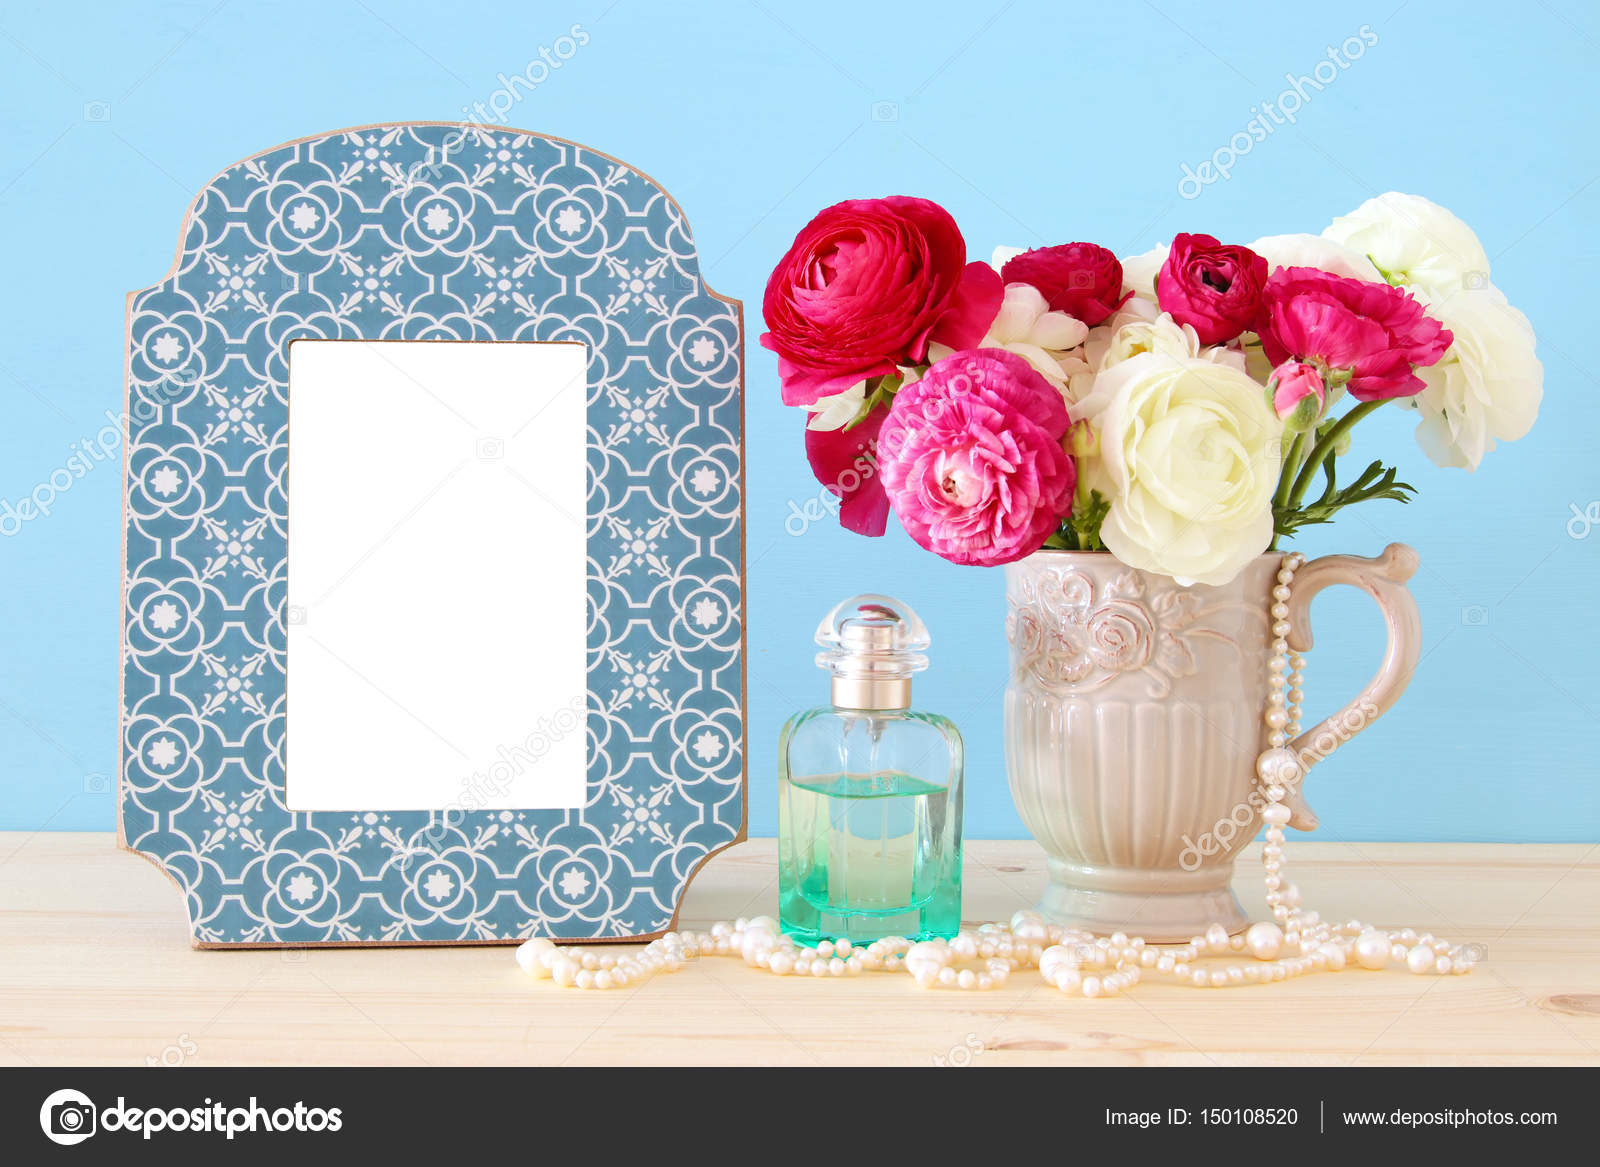 Spring flowers perfume bottle and pearls next to blank vintage spring flowers perfume bottle and pearls next to blank vintage photo frame stock photo mightylinksfo